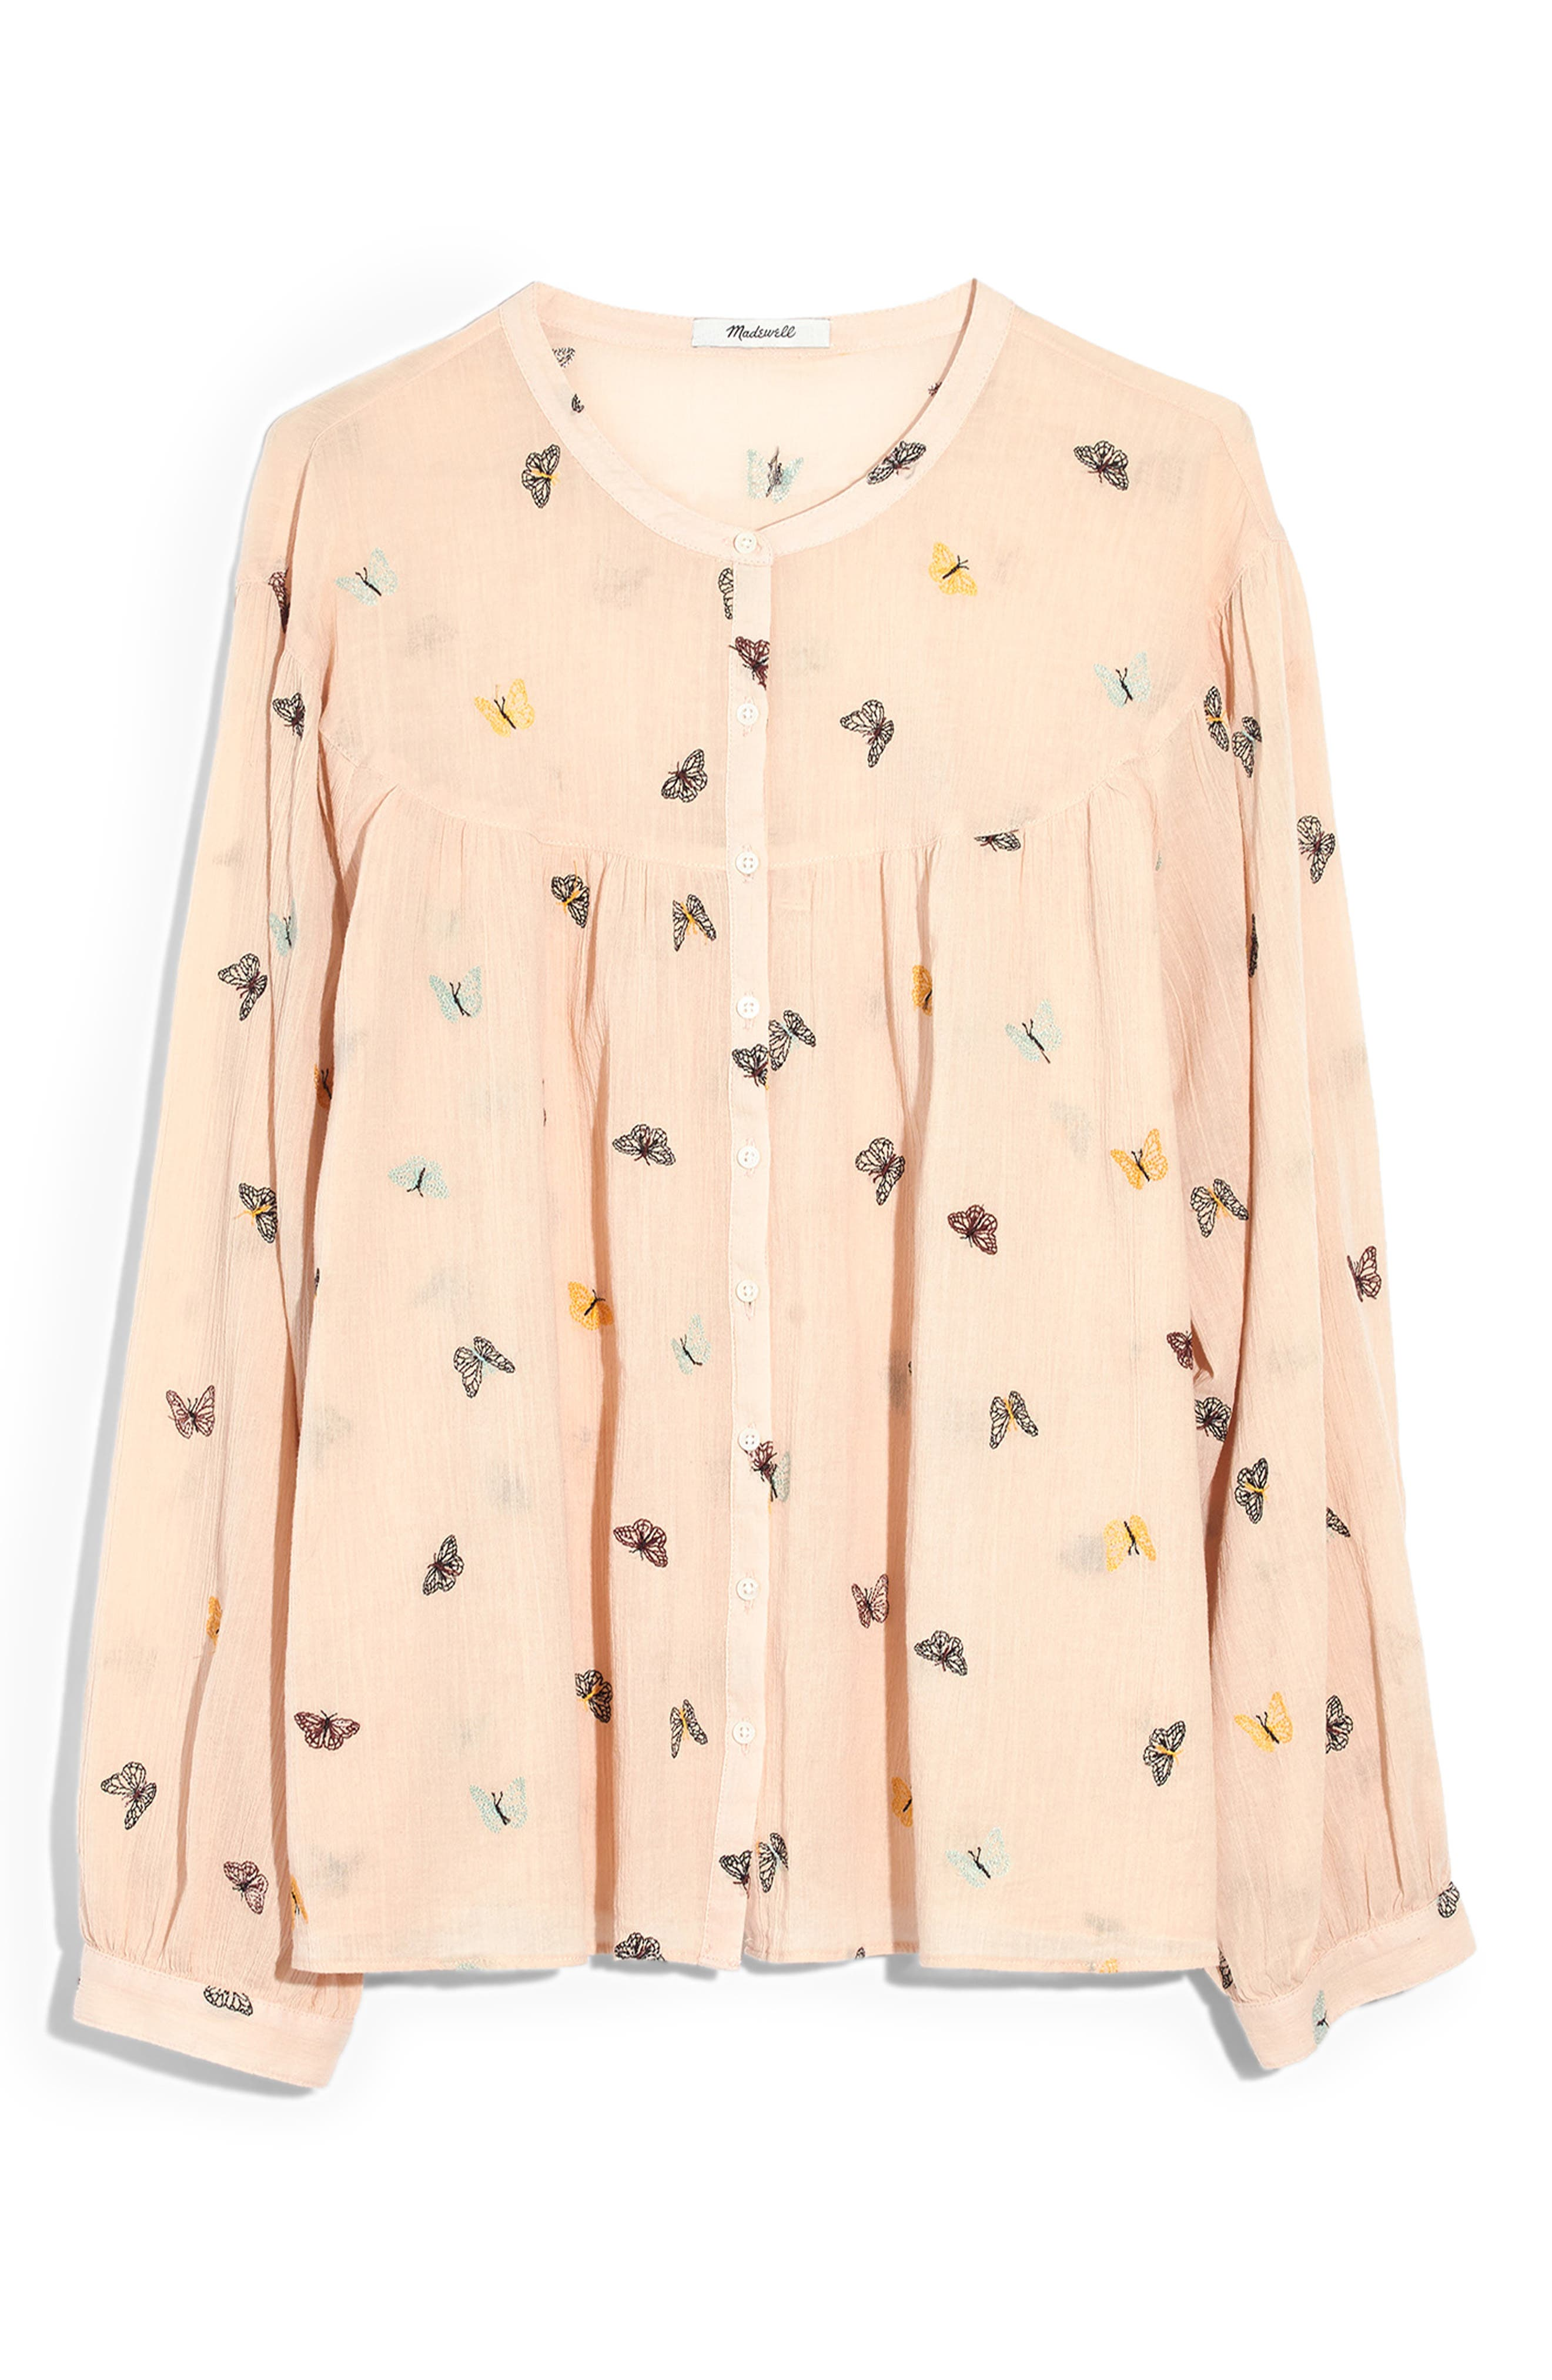 MADEWELL, Butterfly Breeze Balloon Sleeve Peasant Top, Alternate thumbnail 4, color, FLUTTERBY PALE PARCHMENT